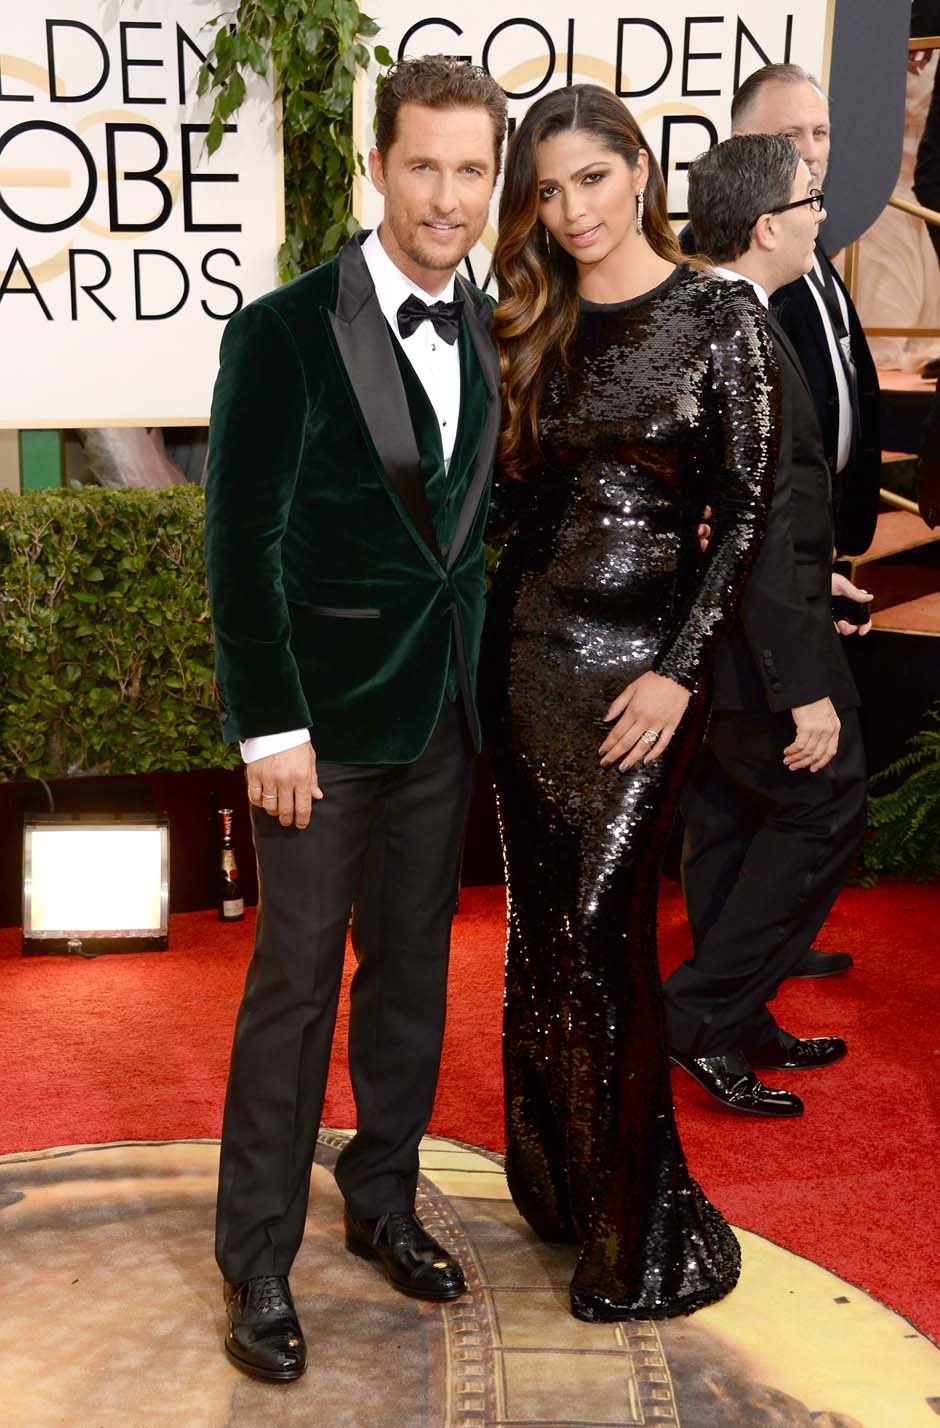 Mathew McConaughey and wife Camila Alves look fabulous in Dior.